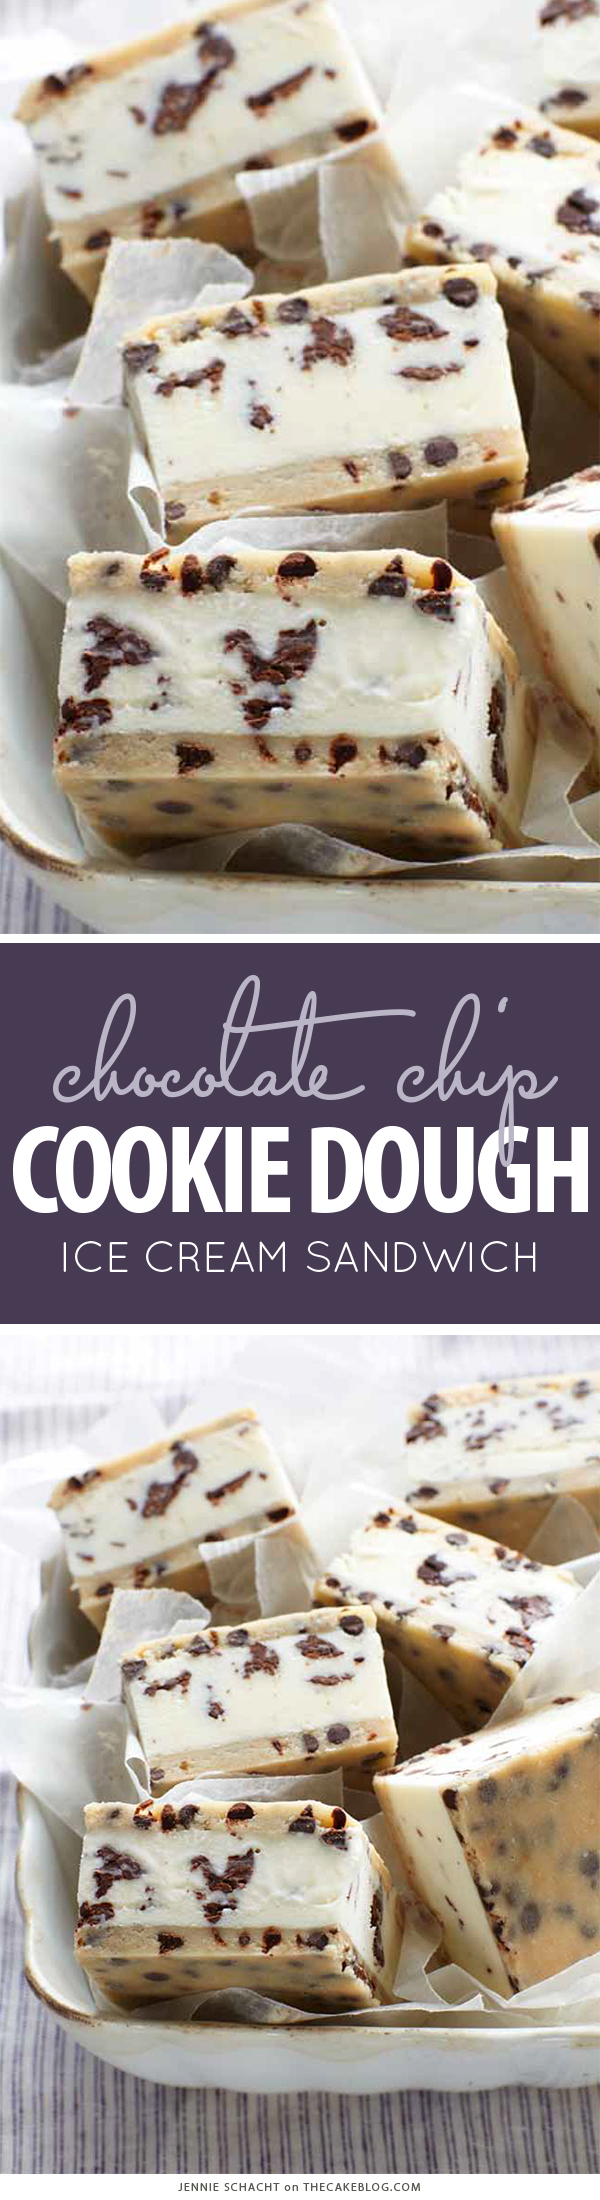 Chocolate Chip Cookie Dough Ice Cream Sandwich | by Jennie Schacht, author of I Scream Sandwich! on TheCakeBlog.com